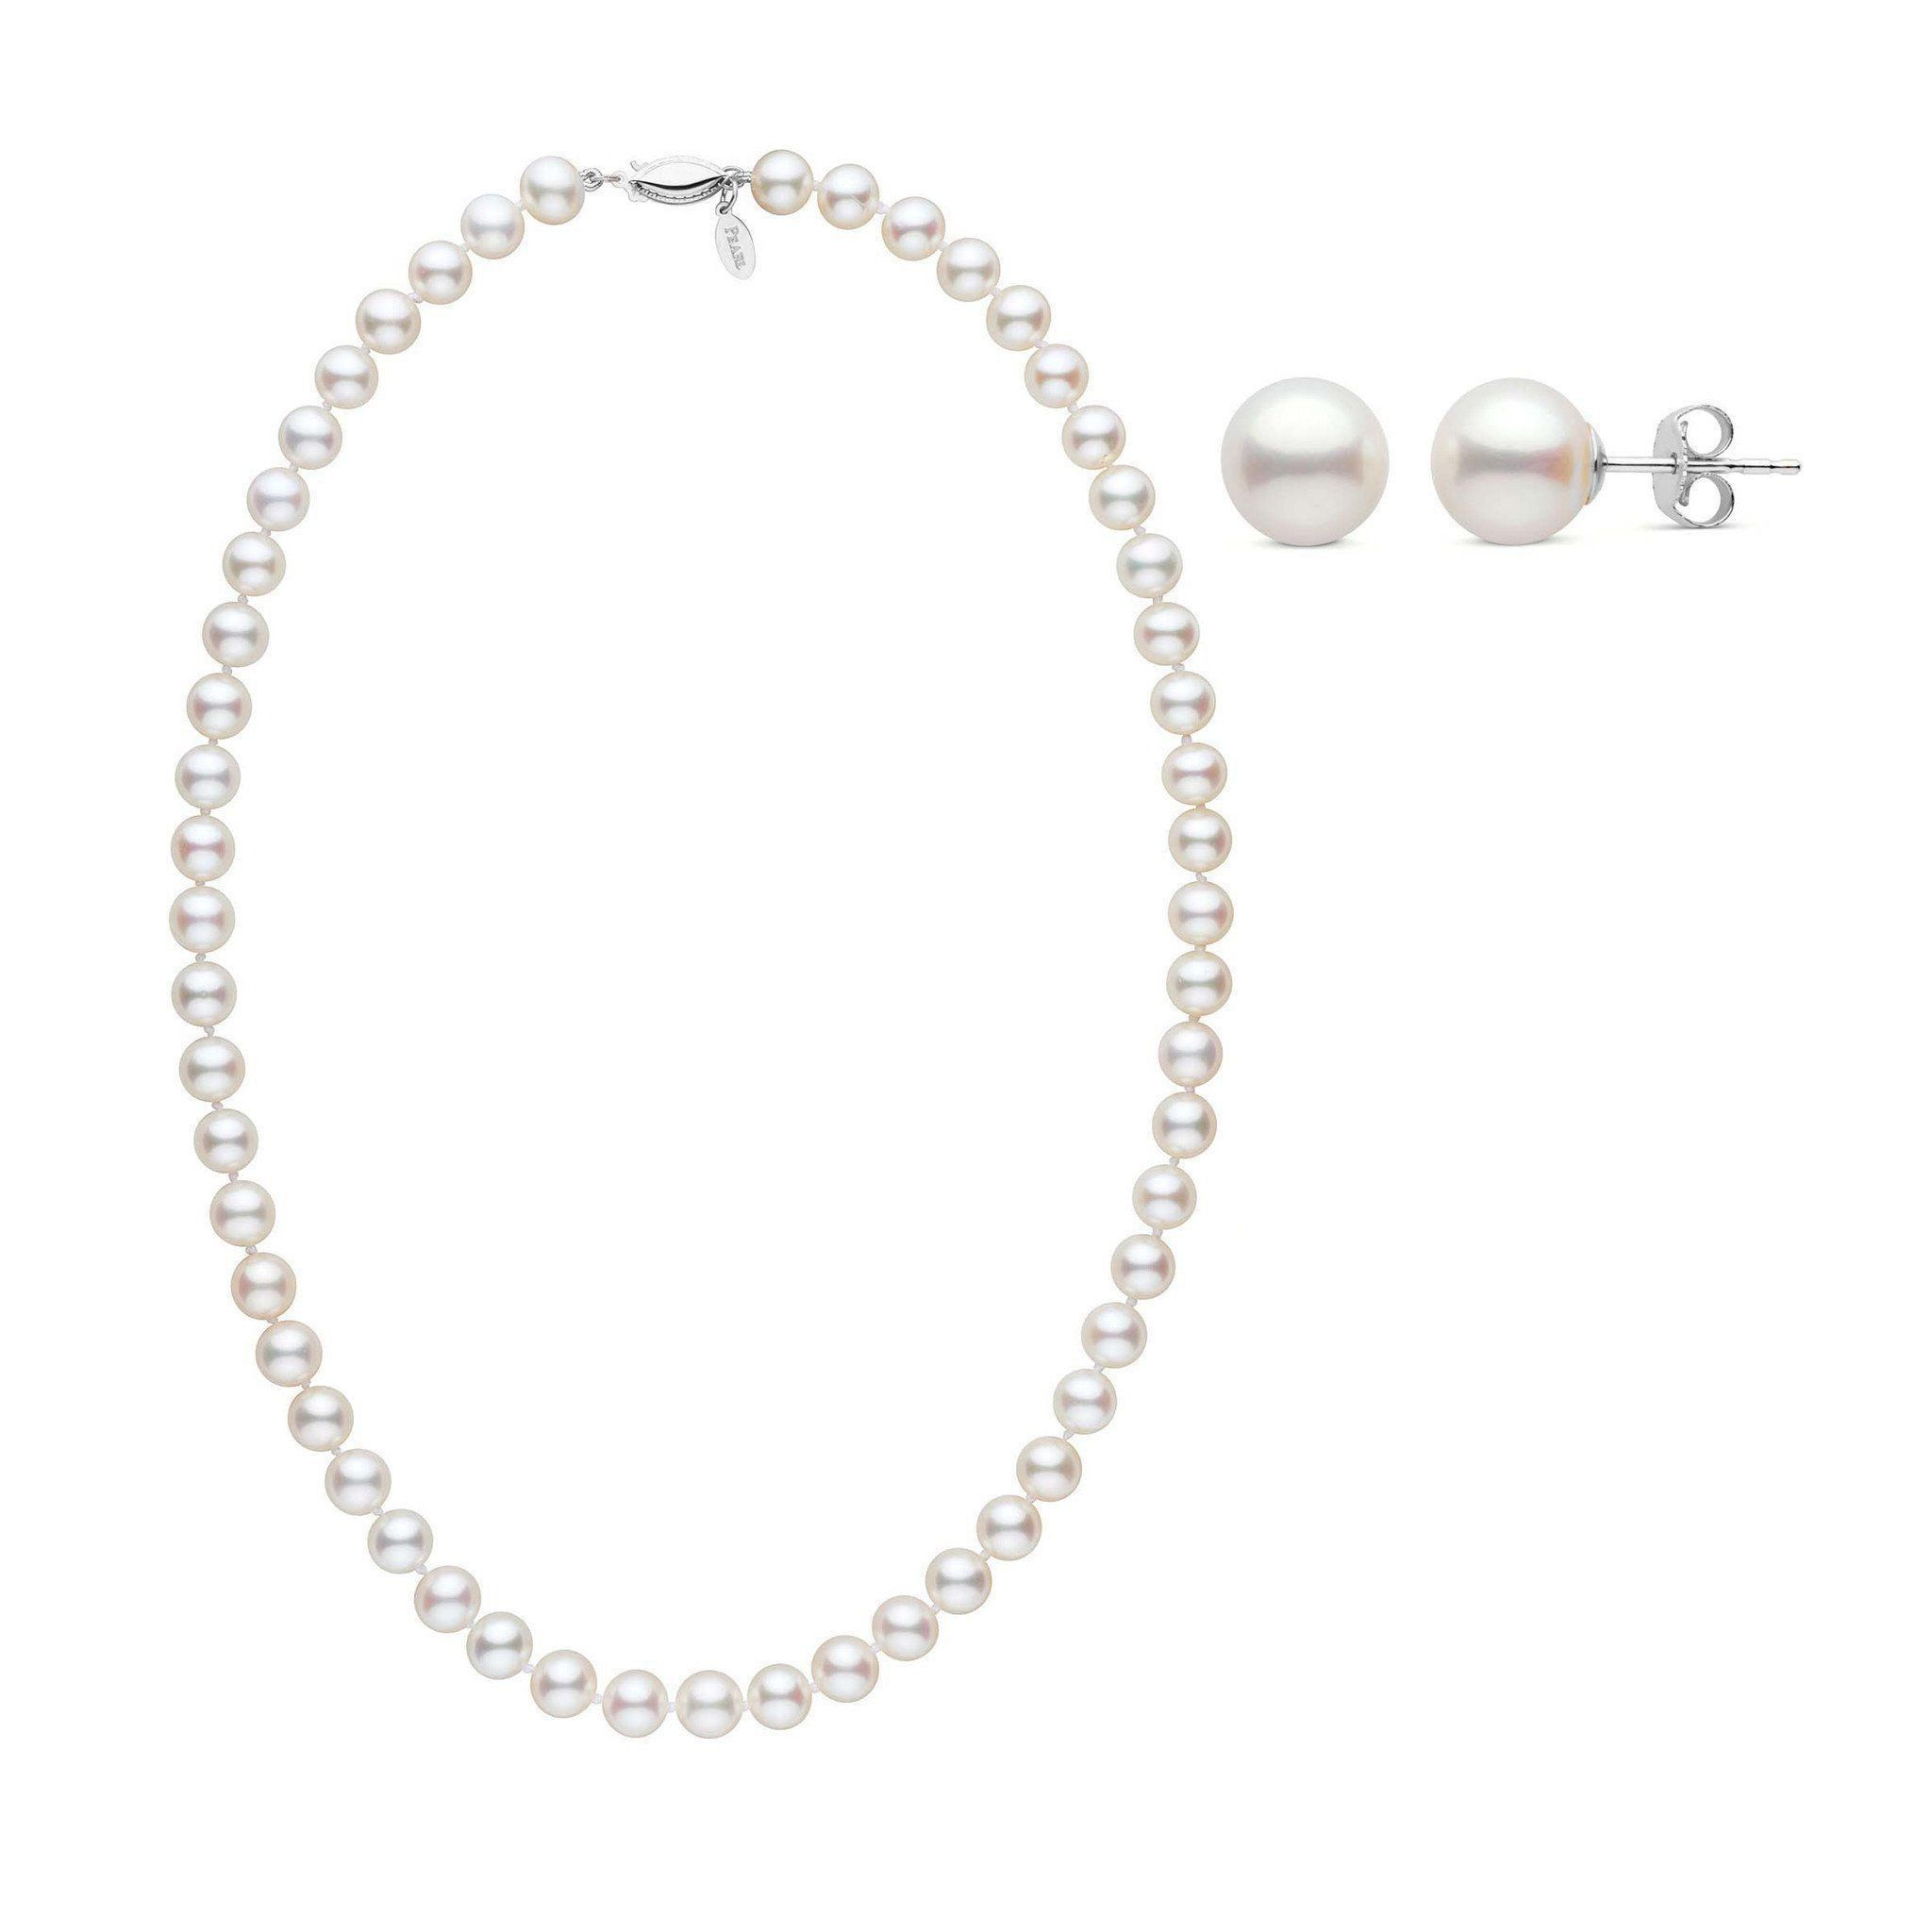 7.5-8.0 mm Freshadama Pearl Necklace & Earring Set